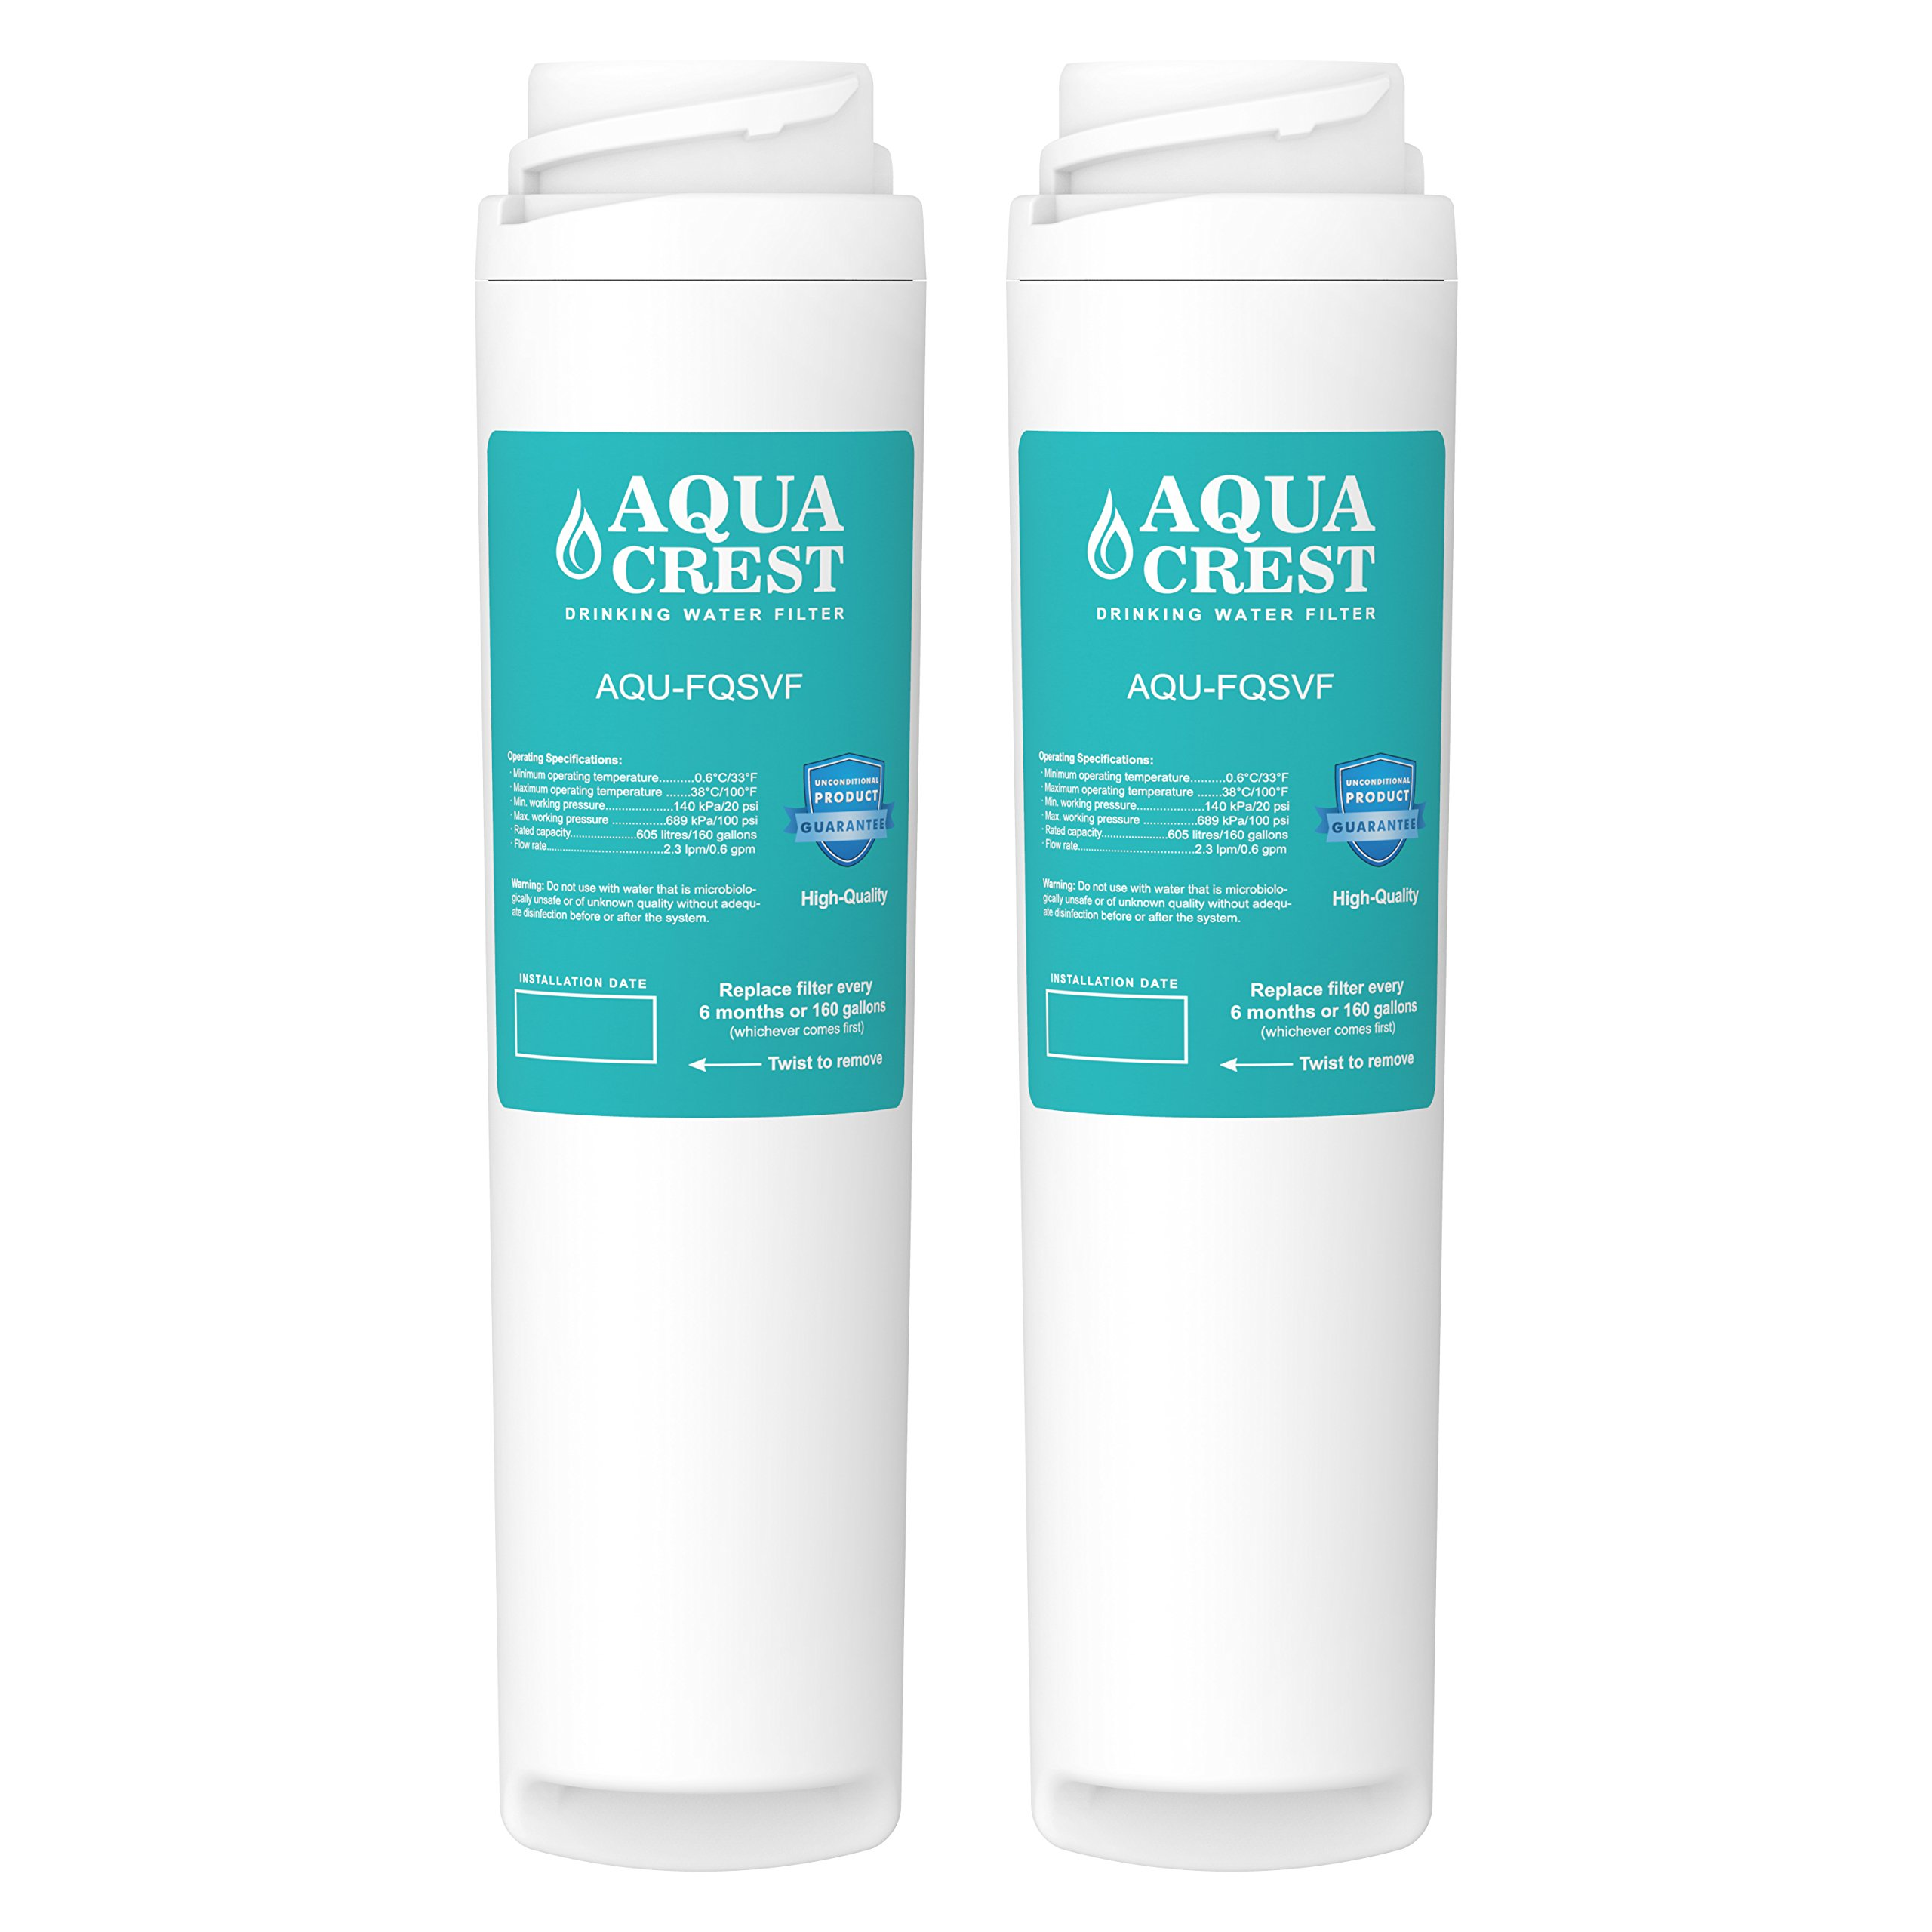 AQUACREST FQSVF Replacement Under Sink Water Filter, Compatible with GE FQSVF, GXSV65R (1 Set) by AQUA CREST